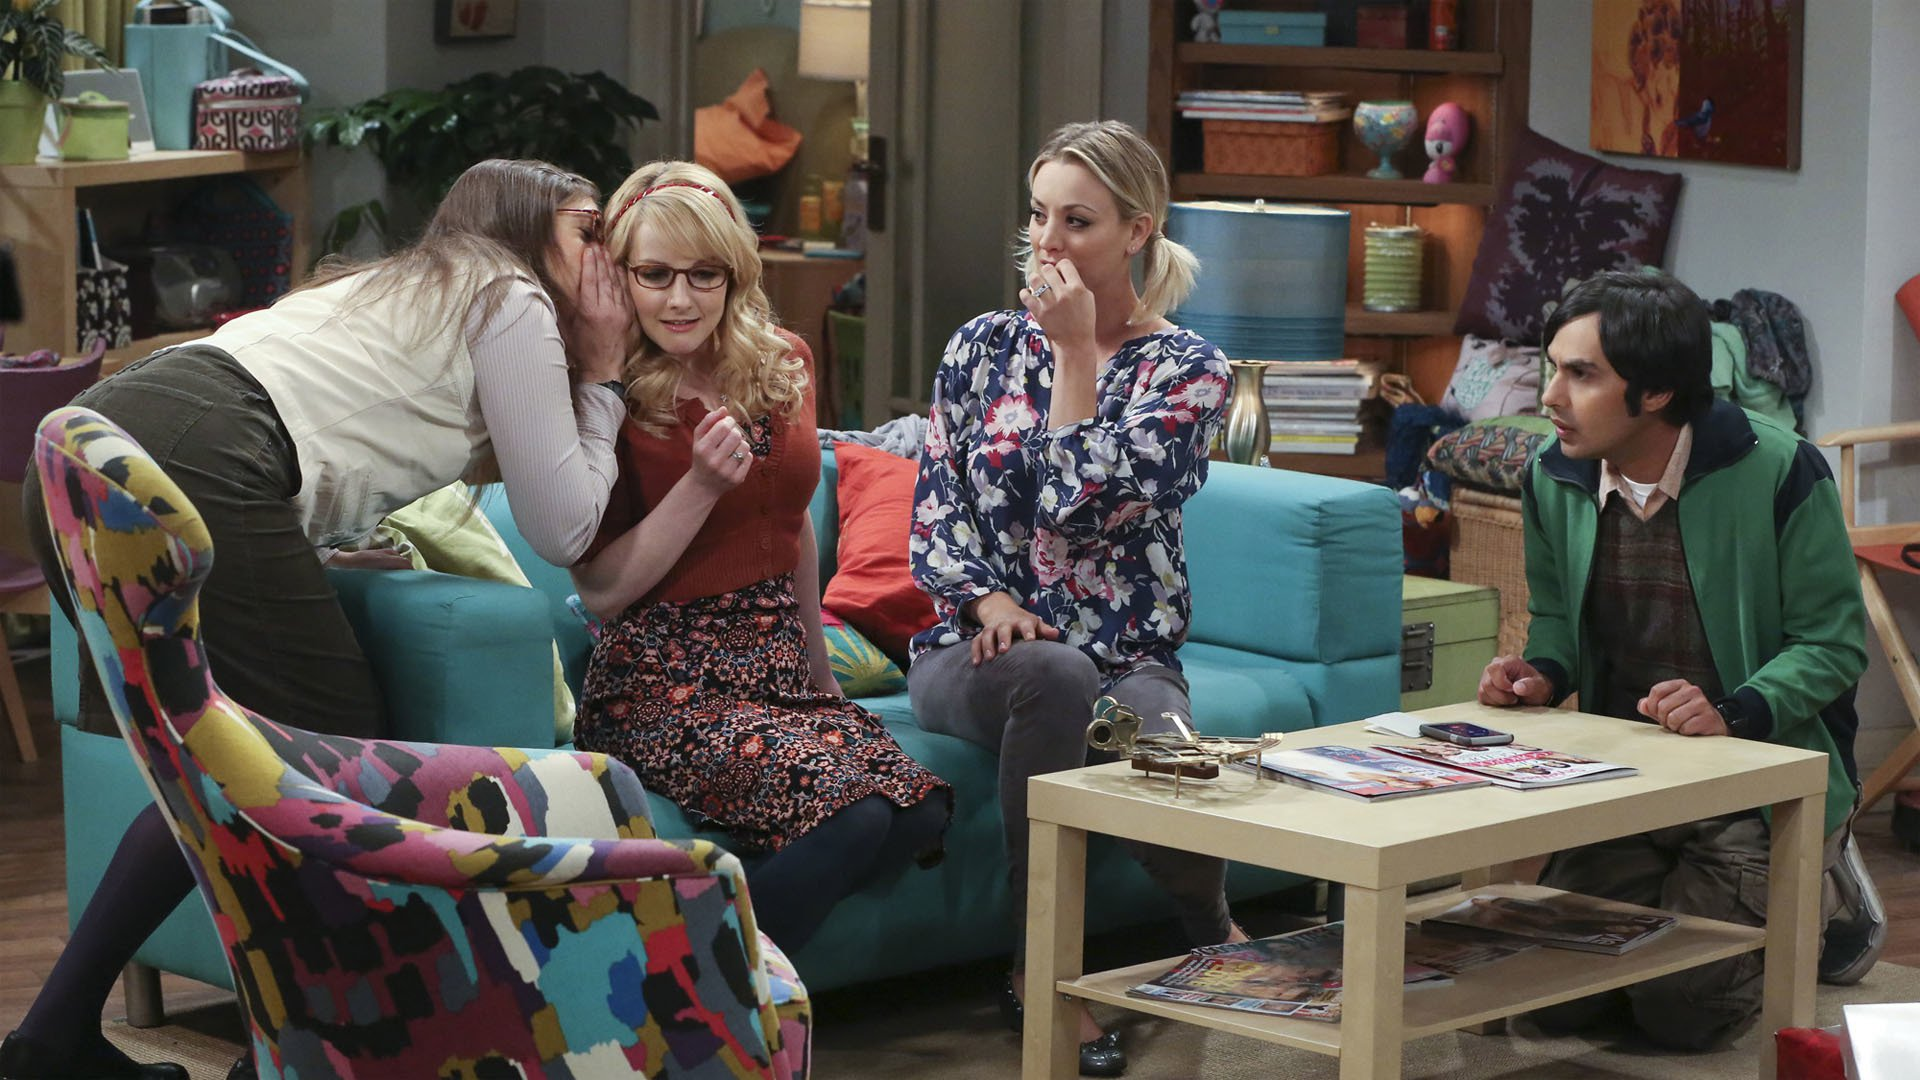 the  u0026quot big bang theory u0026quot  cast is reportedly taking pay cuts to help their female costars